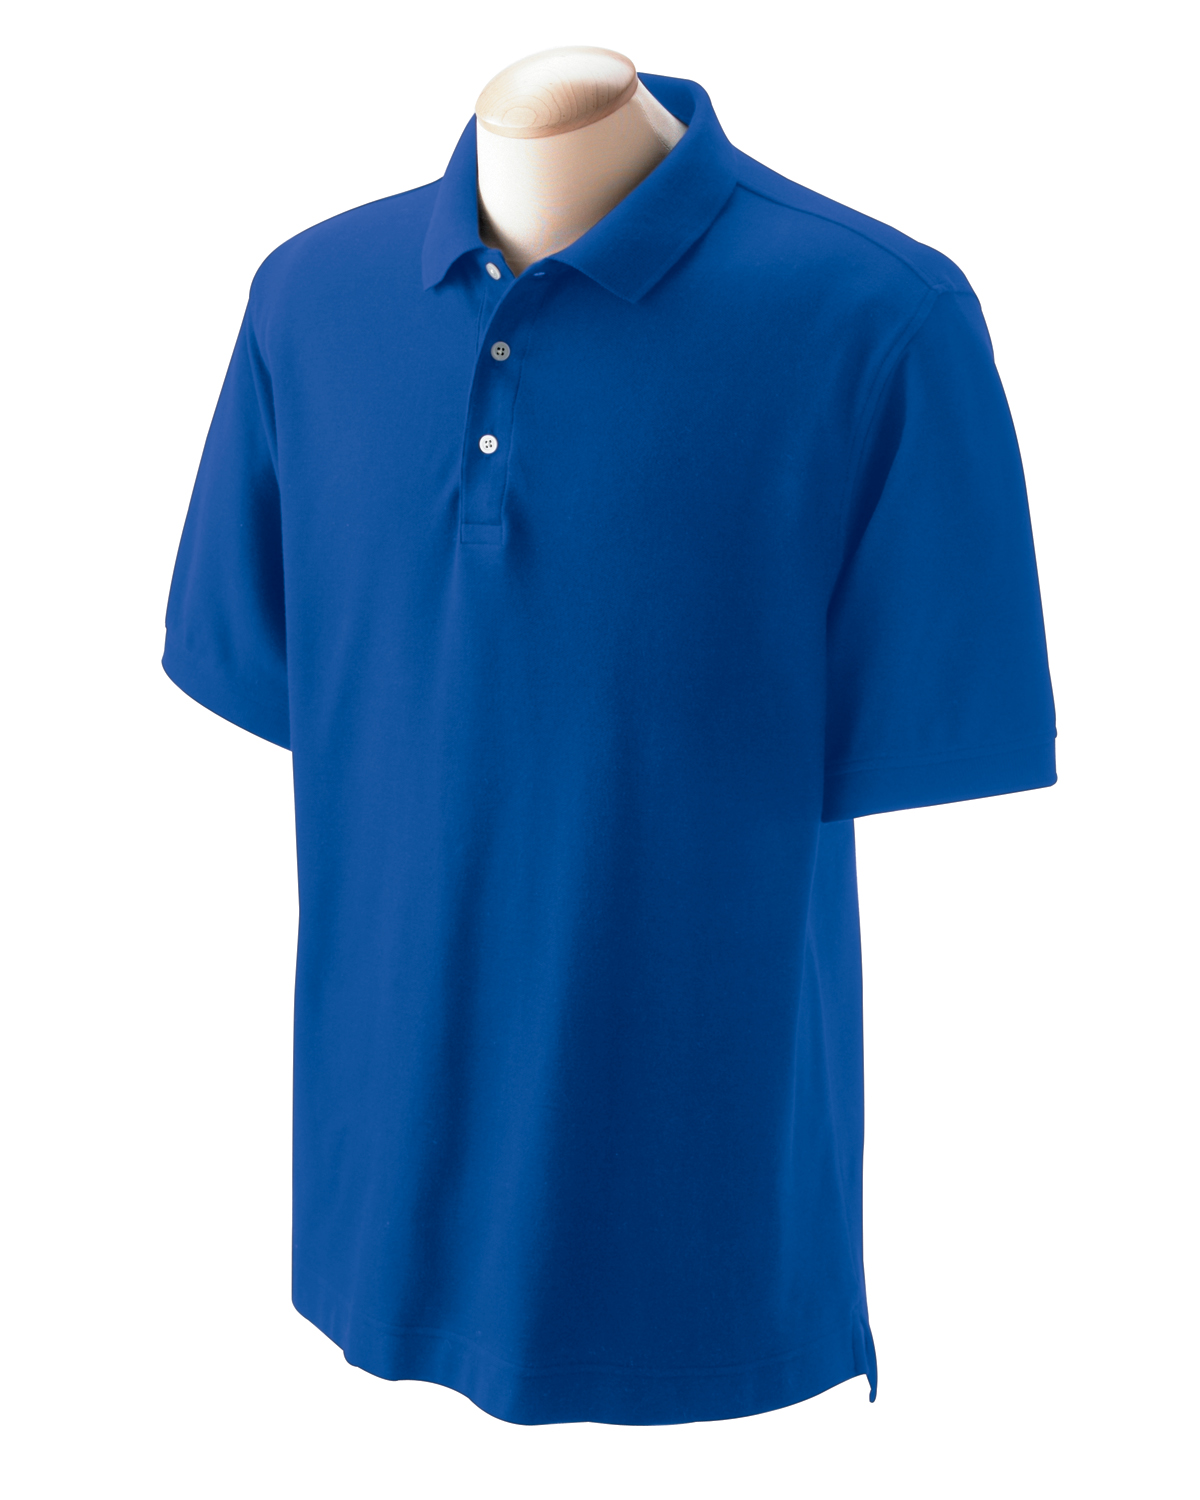 When your customer needs a sport shirt that is going to stand up to long days of work or play, show them % polyester performance polos. Unlike cotton shirts that absorb and hold perspiration leaving your shirt wet and heavy, performance polos pull moisture to the surface of the fabric where it quickly evaporates leaving you cool, dry and.